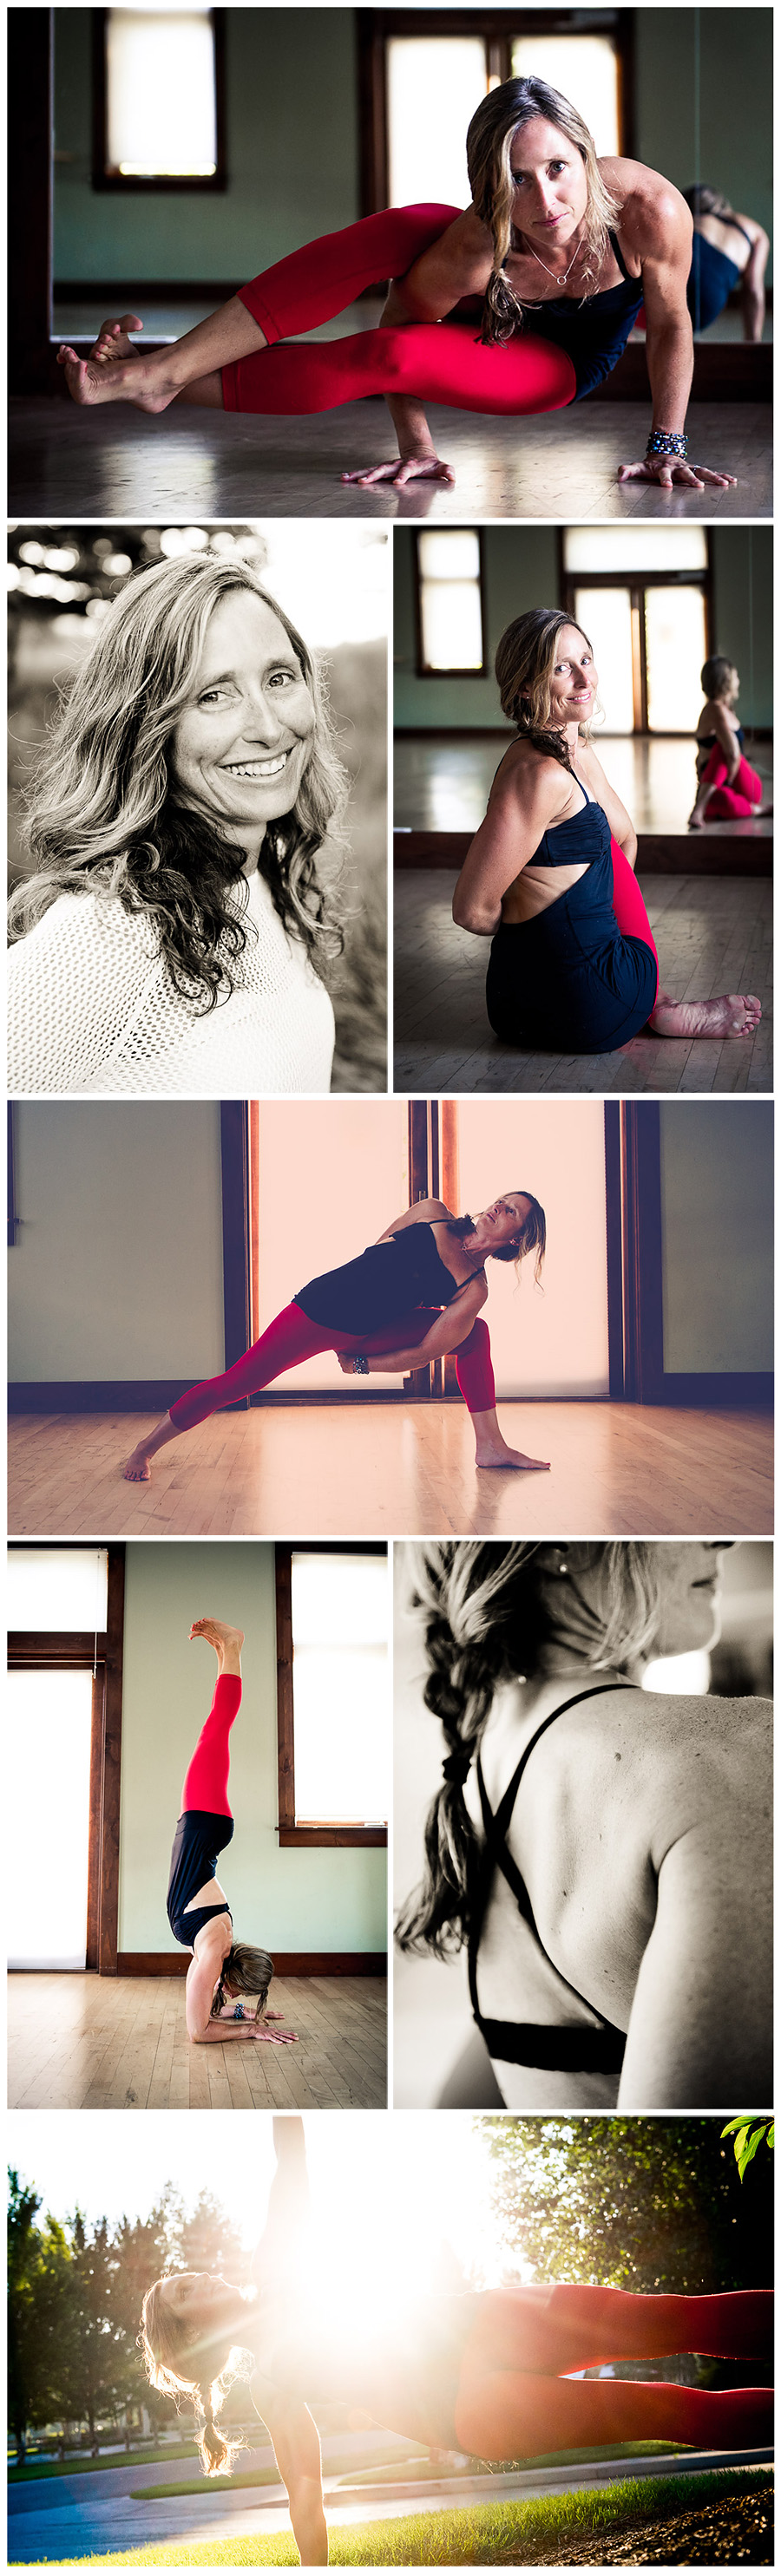 Yoga photos - Kallie collage